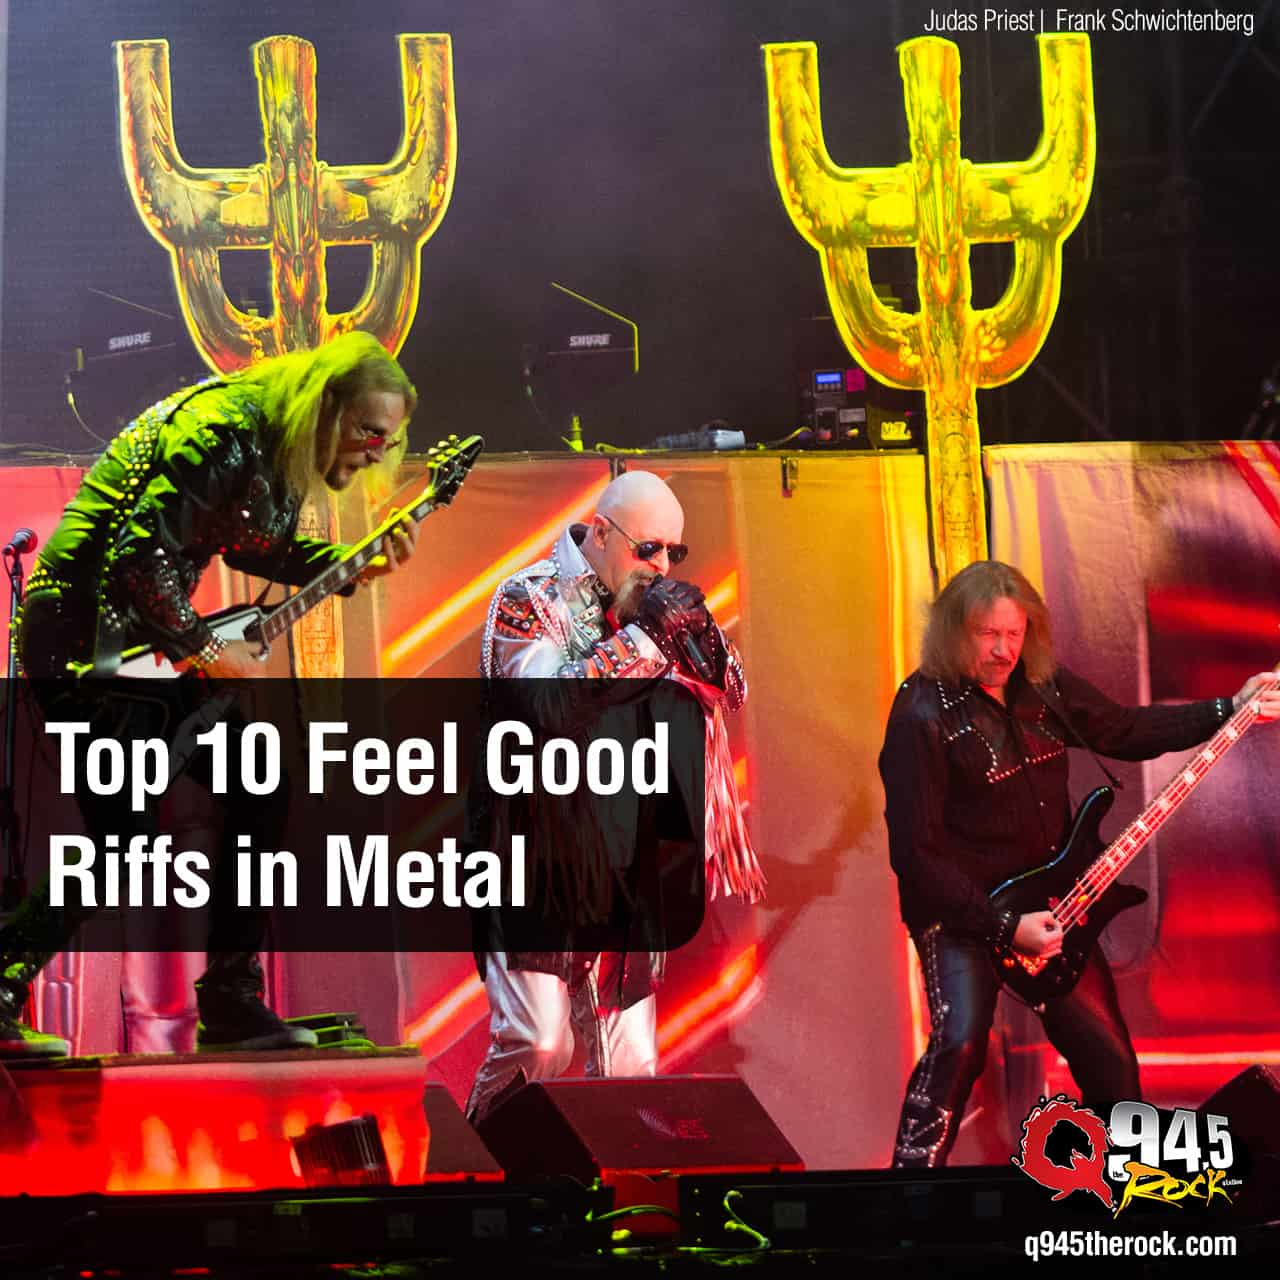 Are These the Top 10 Feel-Good Riffs in Metal?